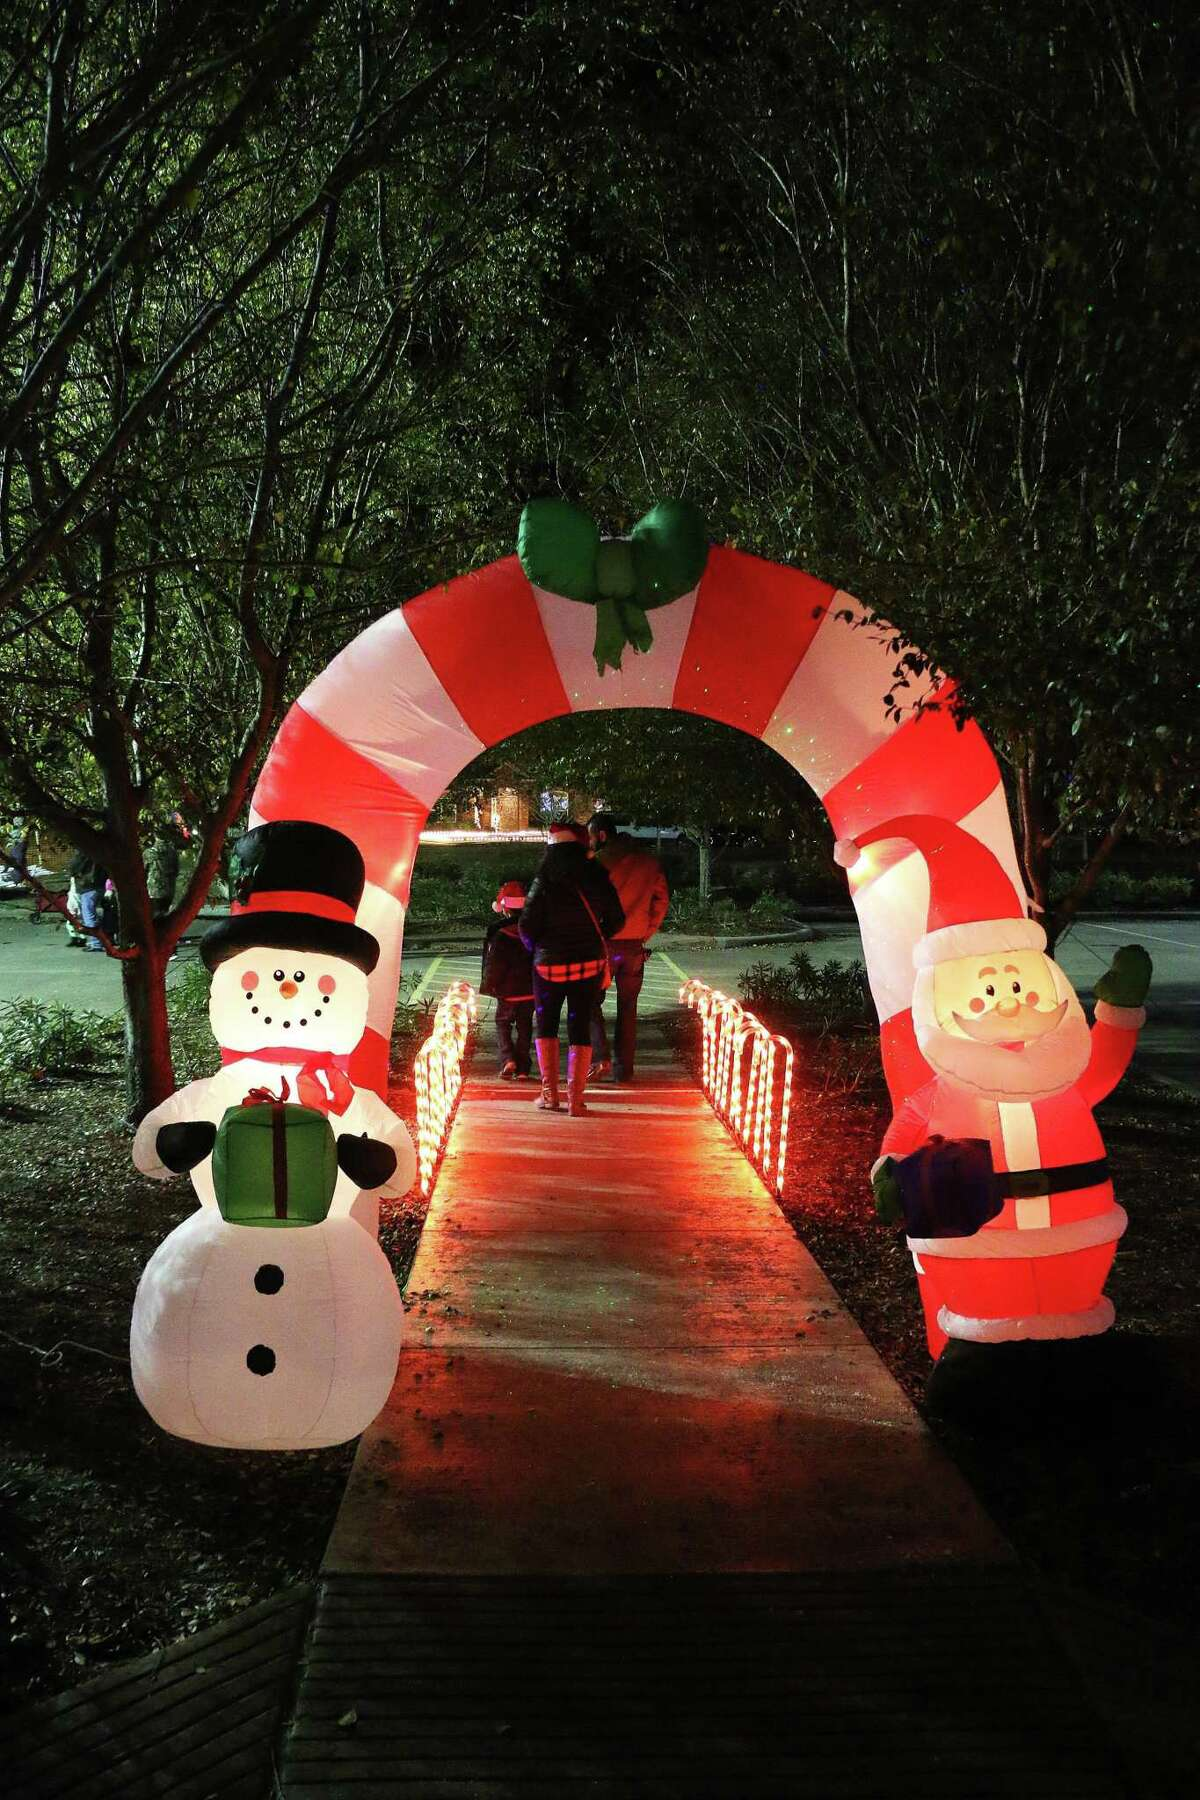 This walkway with Santa and Frosty became a special place for photo ops for festival goers at the Spirit of Christmas celebration last year outside the Dayton Community Center.